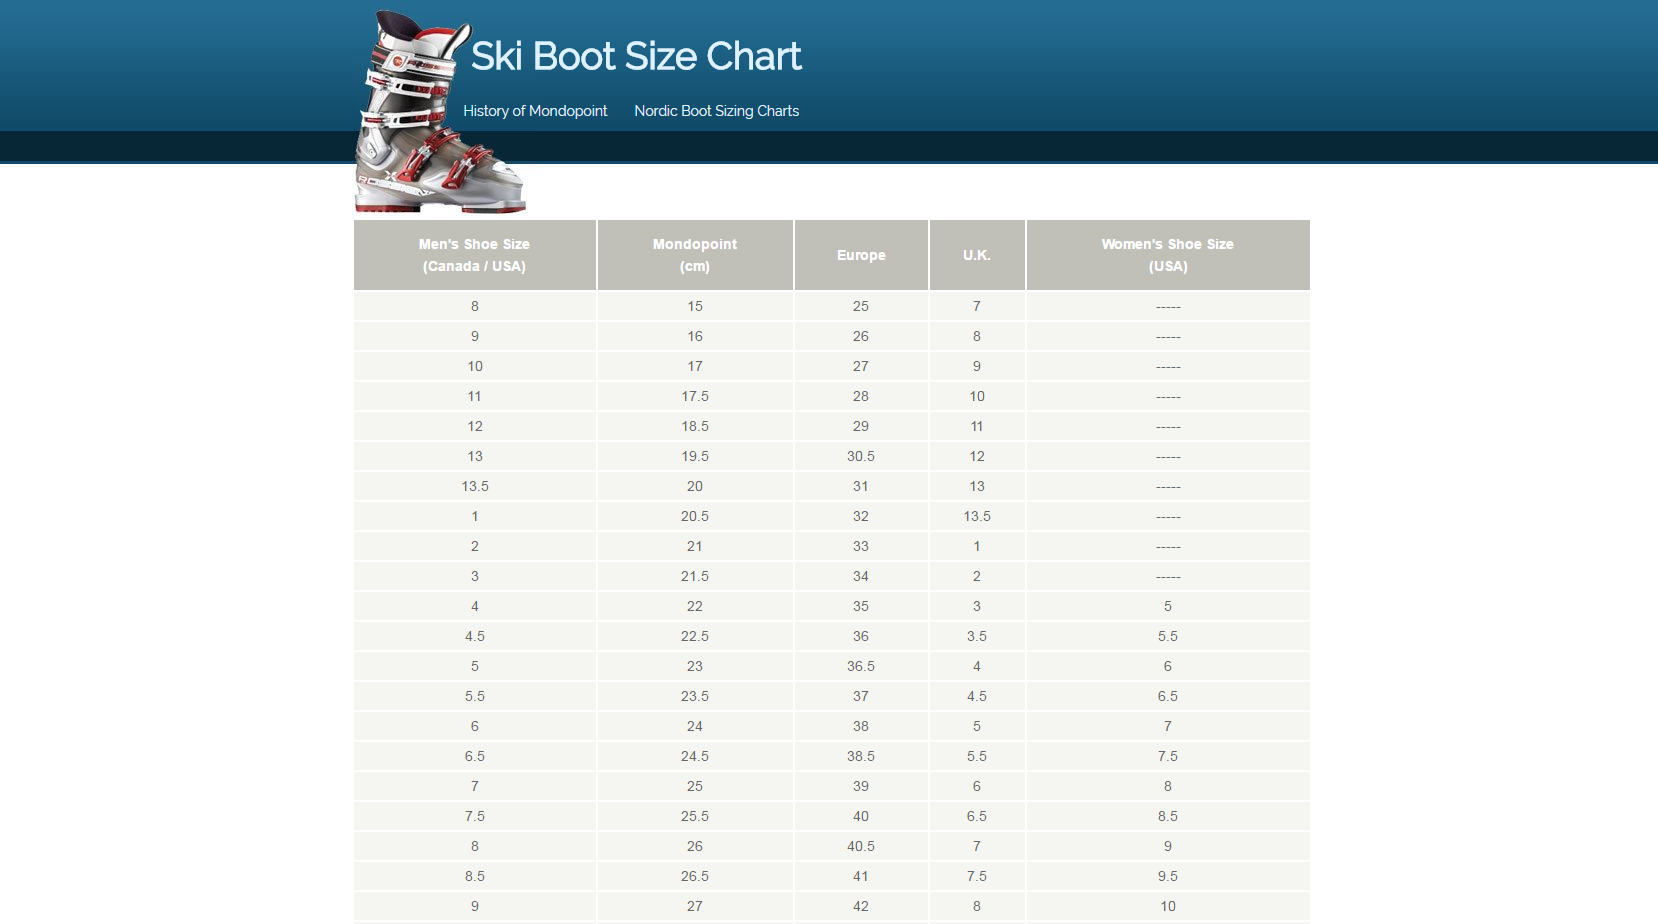 ski boot sizing chart and mondopoint conversion table